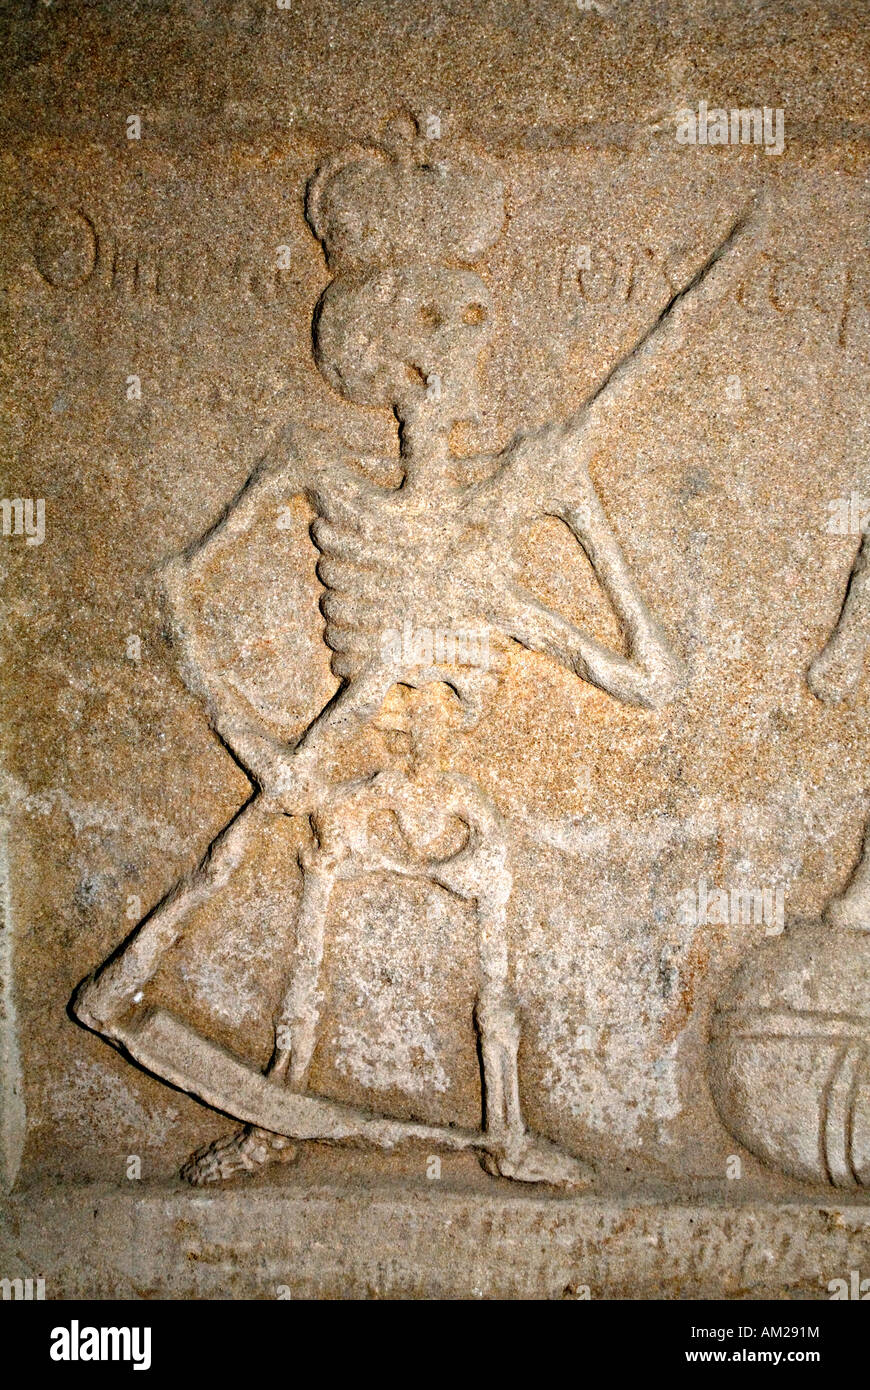 The Grim Reaper, Lord of Death, on Tombstone in the Crypt of Rosslyn Chapel Roslin Scotland UK - Stock Image